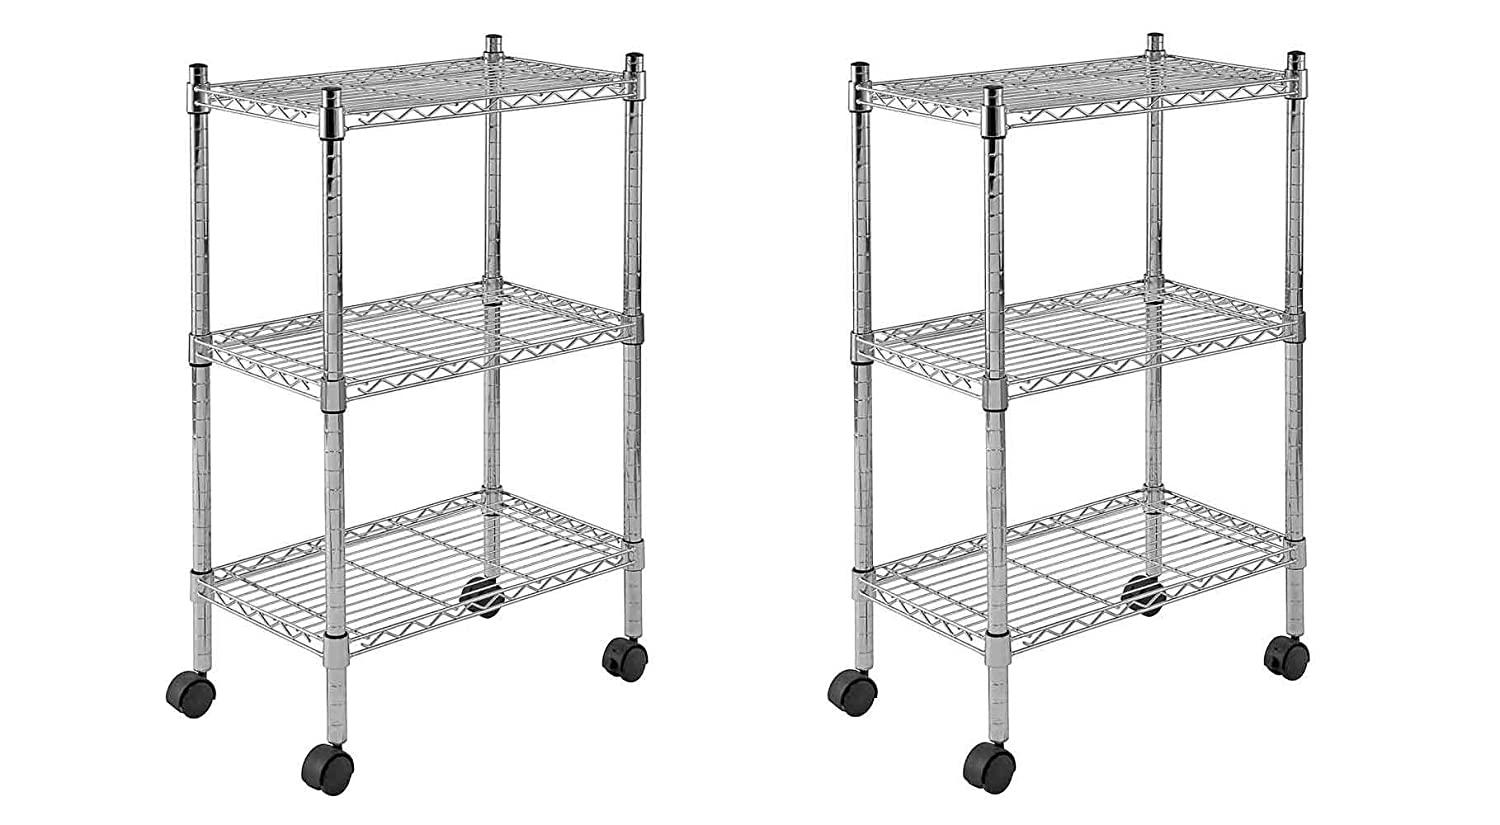 Chrome 33 Height x 22 Width x 13 Depth Sandusky MWS221333 3-Tier Mobile Wire Shelving Unit with 2 Nylon Casters 3 Wire Shelves